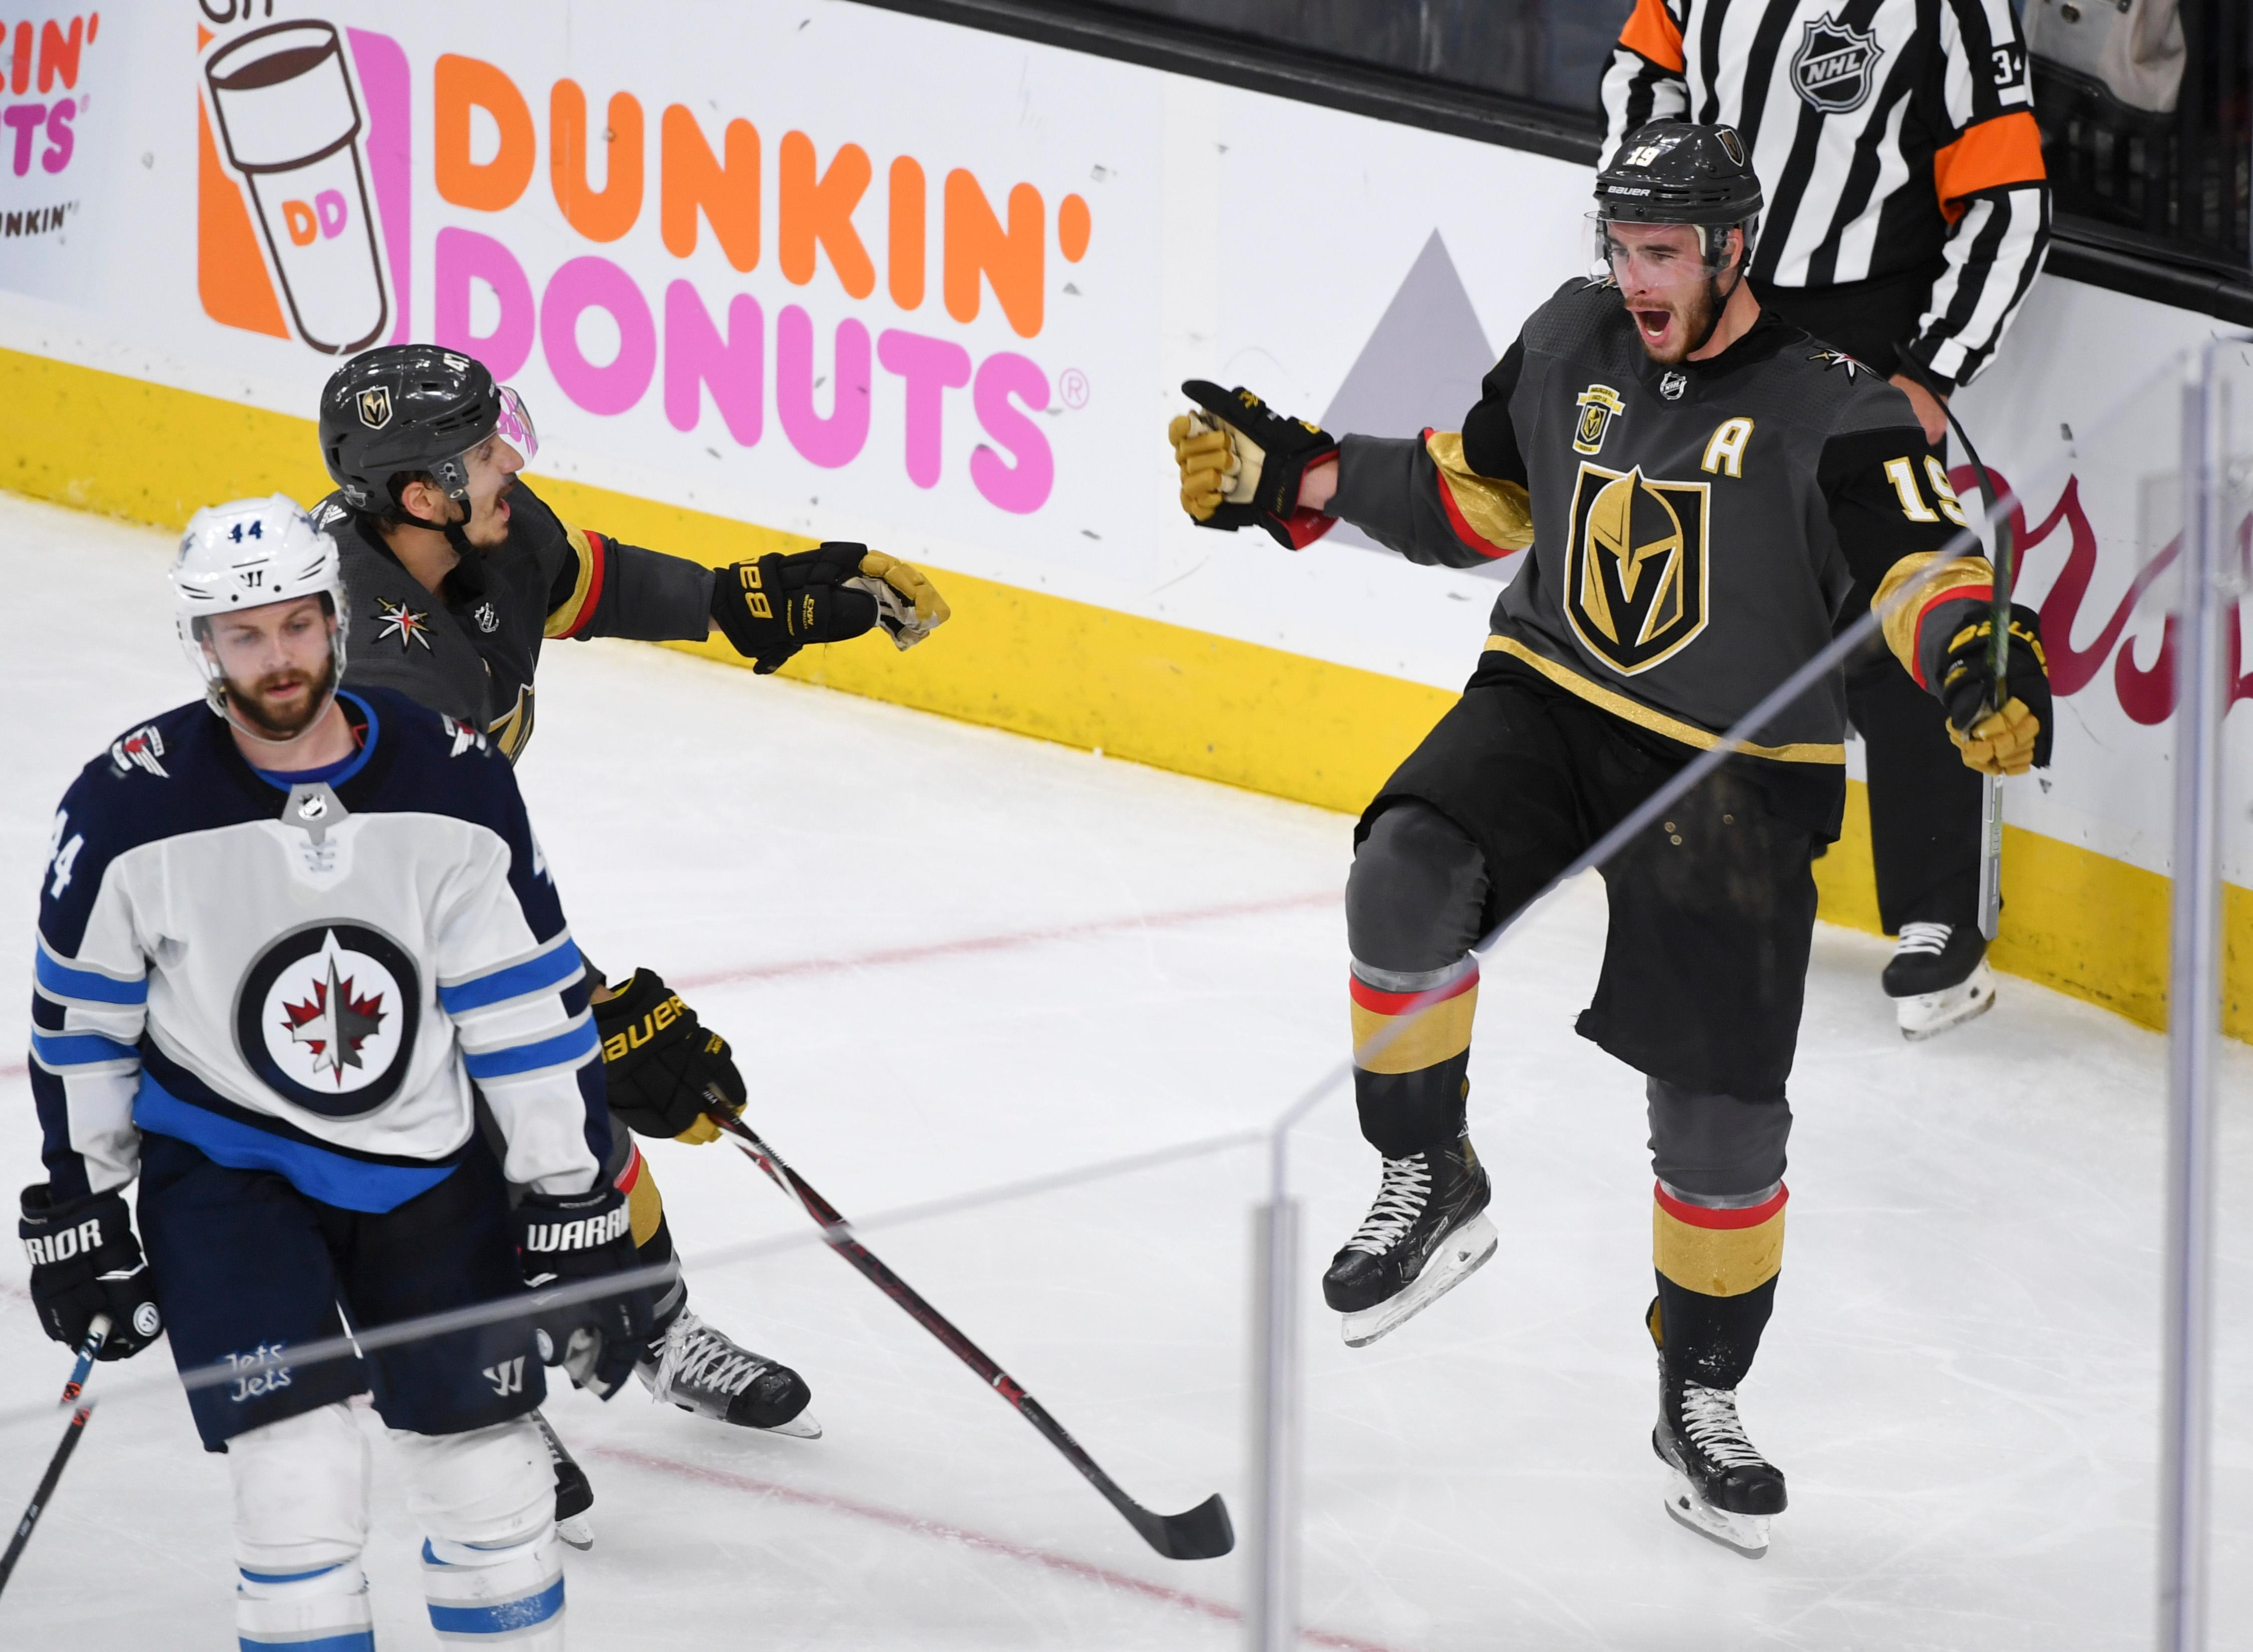 Vegas Golden Knights defenseman Luca Sbisa (47) and Vegas Golden Knights right wing Reilly Smith (19) celebrate Smith's game-winning goal against the Winnipeg Jets  during Game 4 of their NHL hockey Western Conference Final game Friday, May 18, 2018, at T-Mobile Arena. The Golden Knights won 3-2. CREDIT: Sam Morris/Las Vegas News Bureau